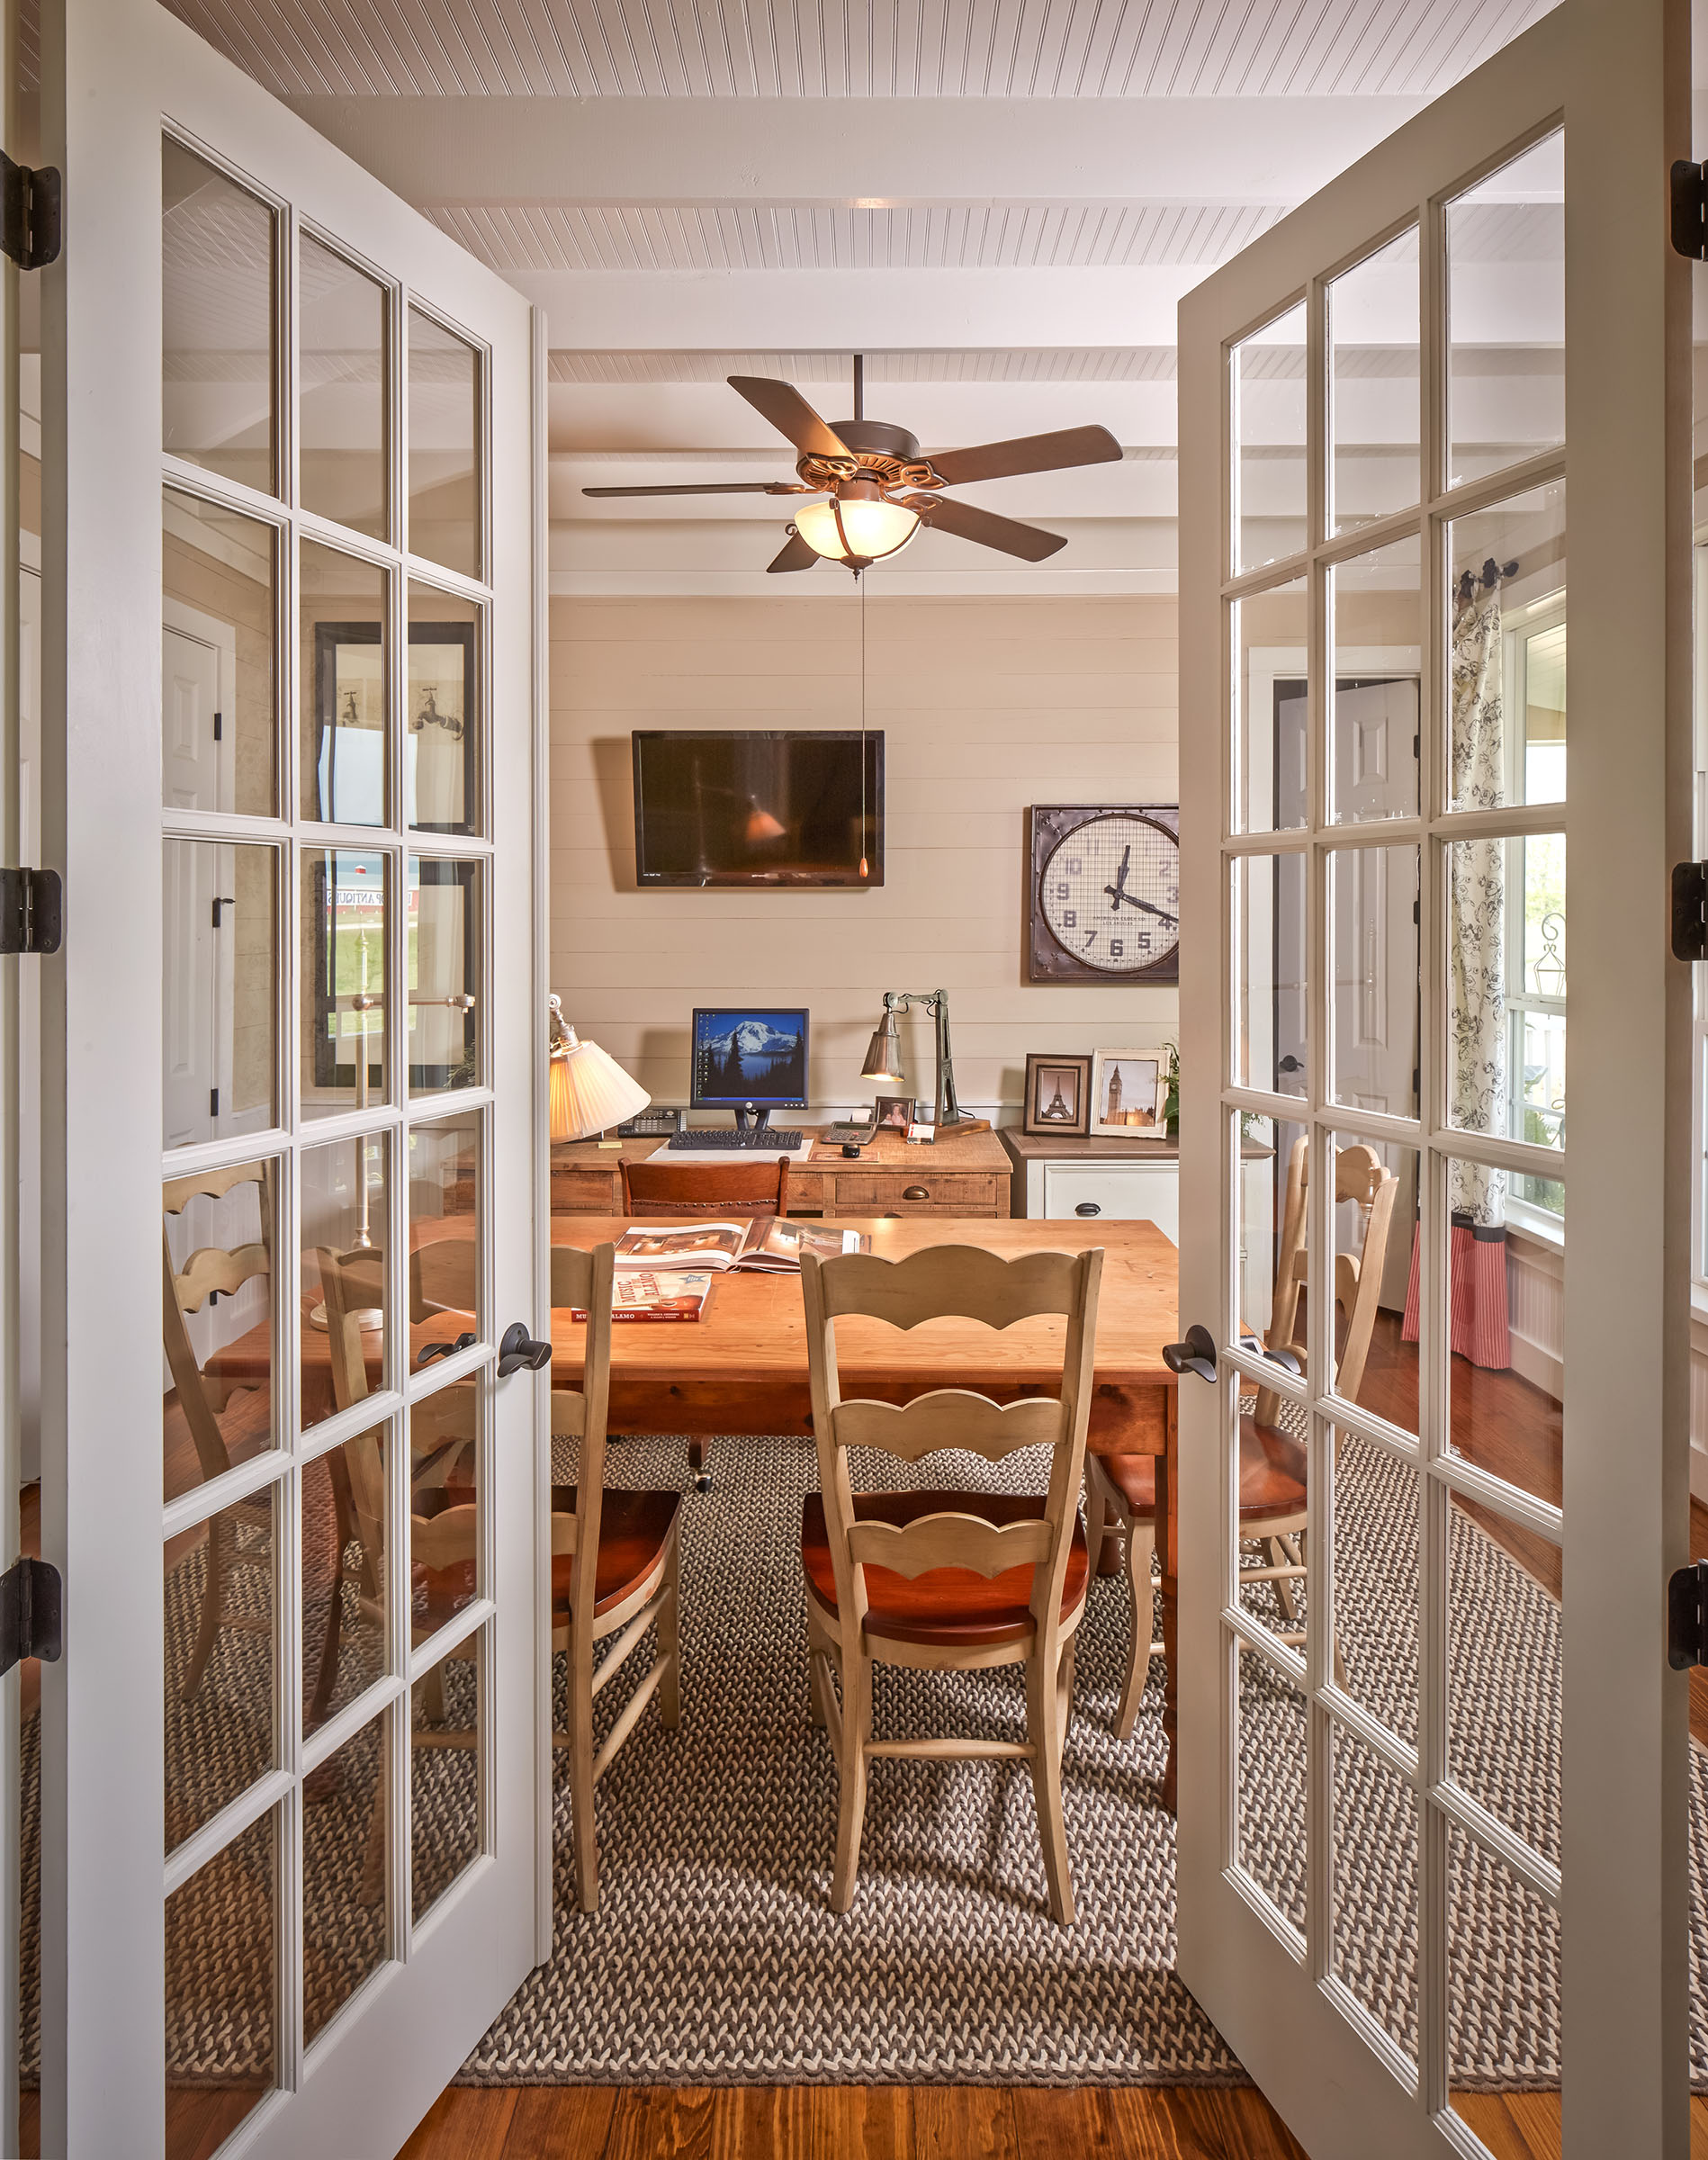 Model Home Park Gallery | Texas Casual Cottages